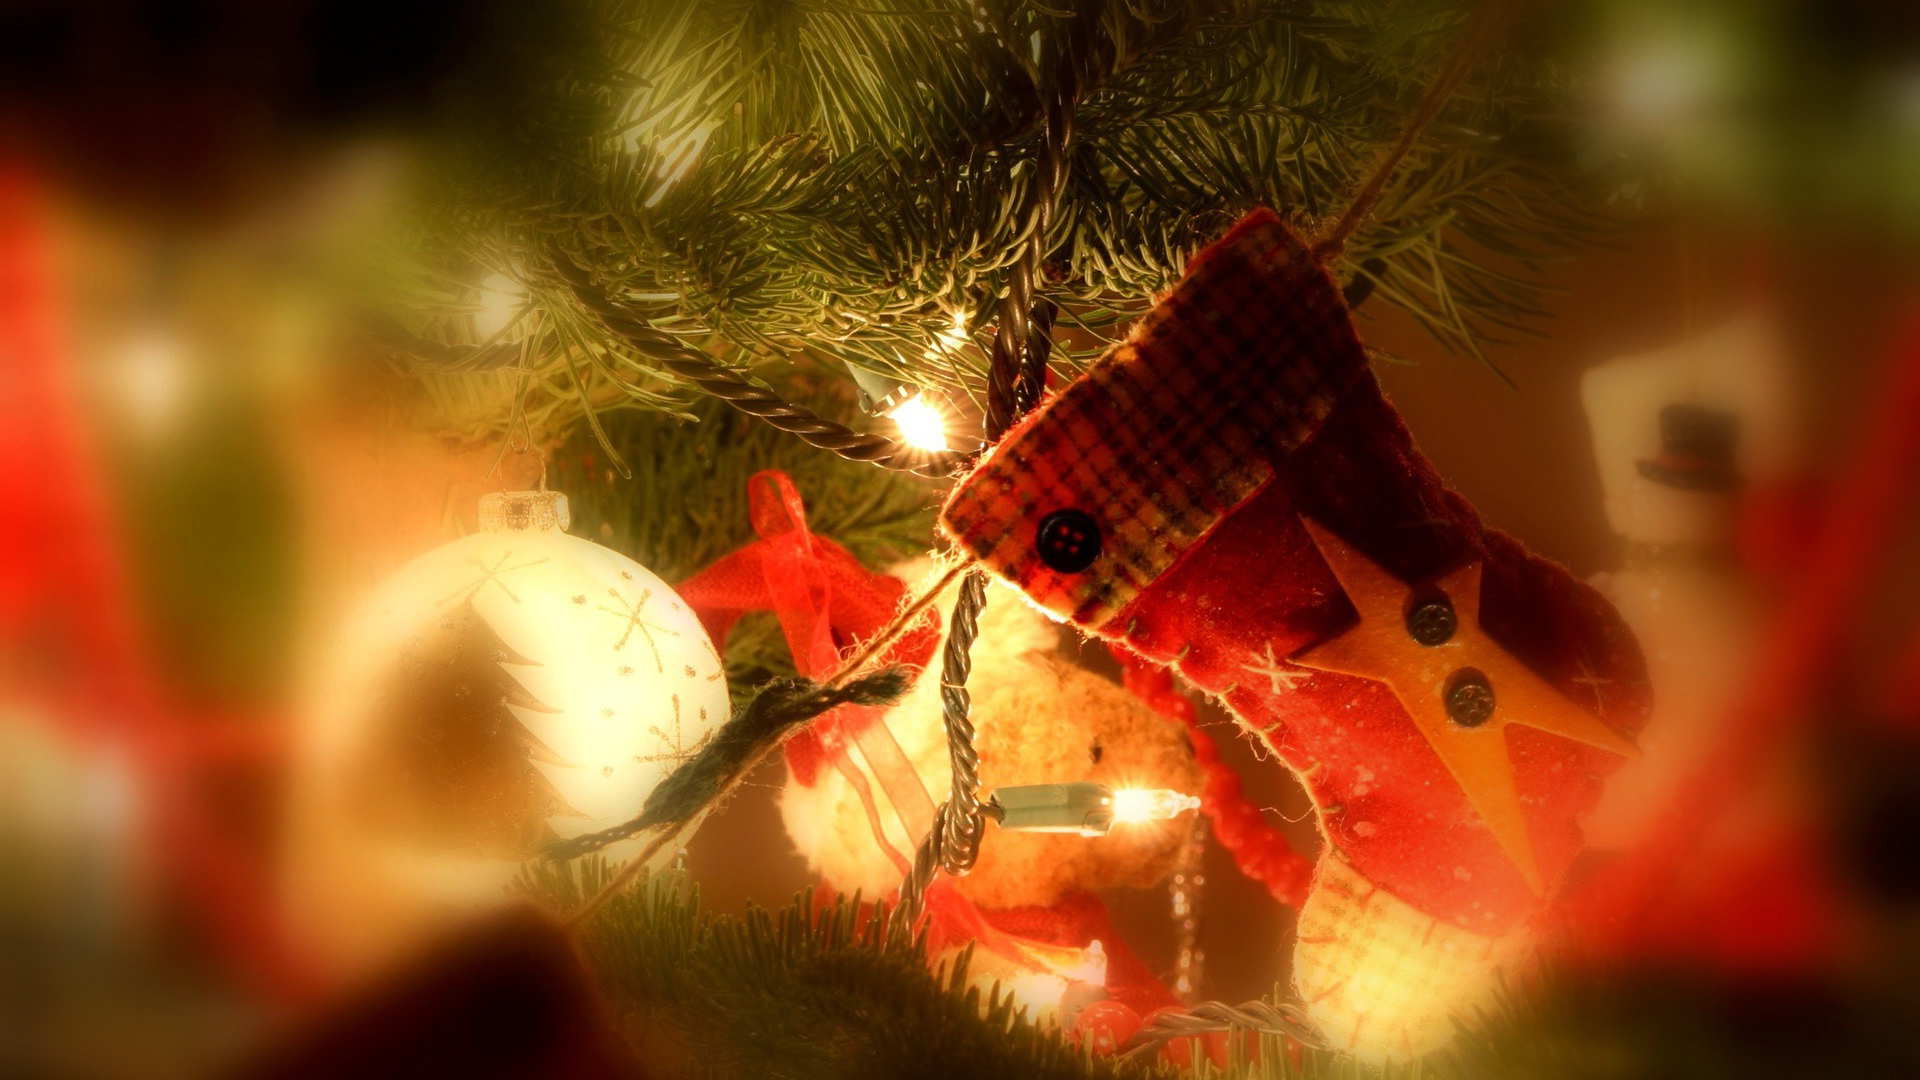 Christmas 2012 1080p 19201080 Full HD Wallpapers download 1080p 1920x1080